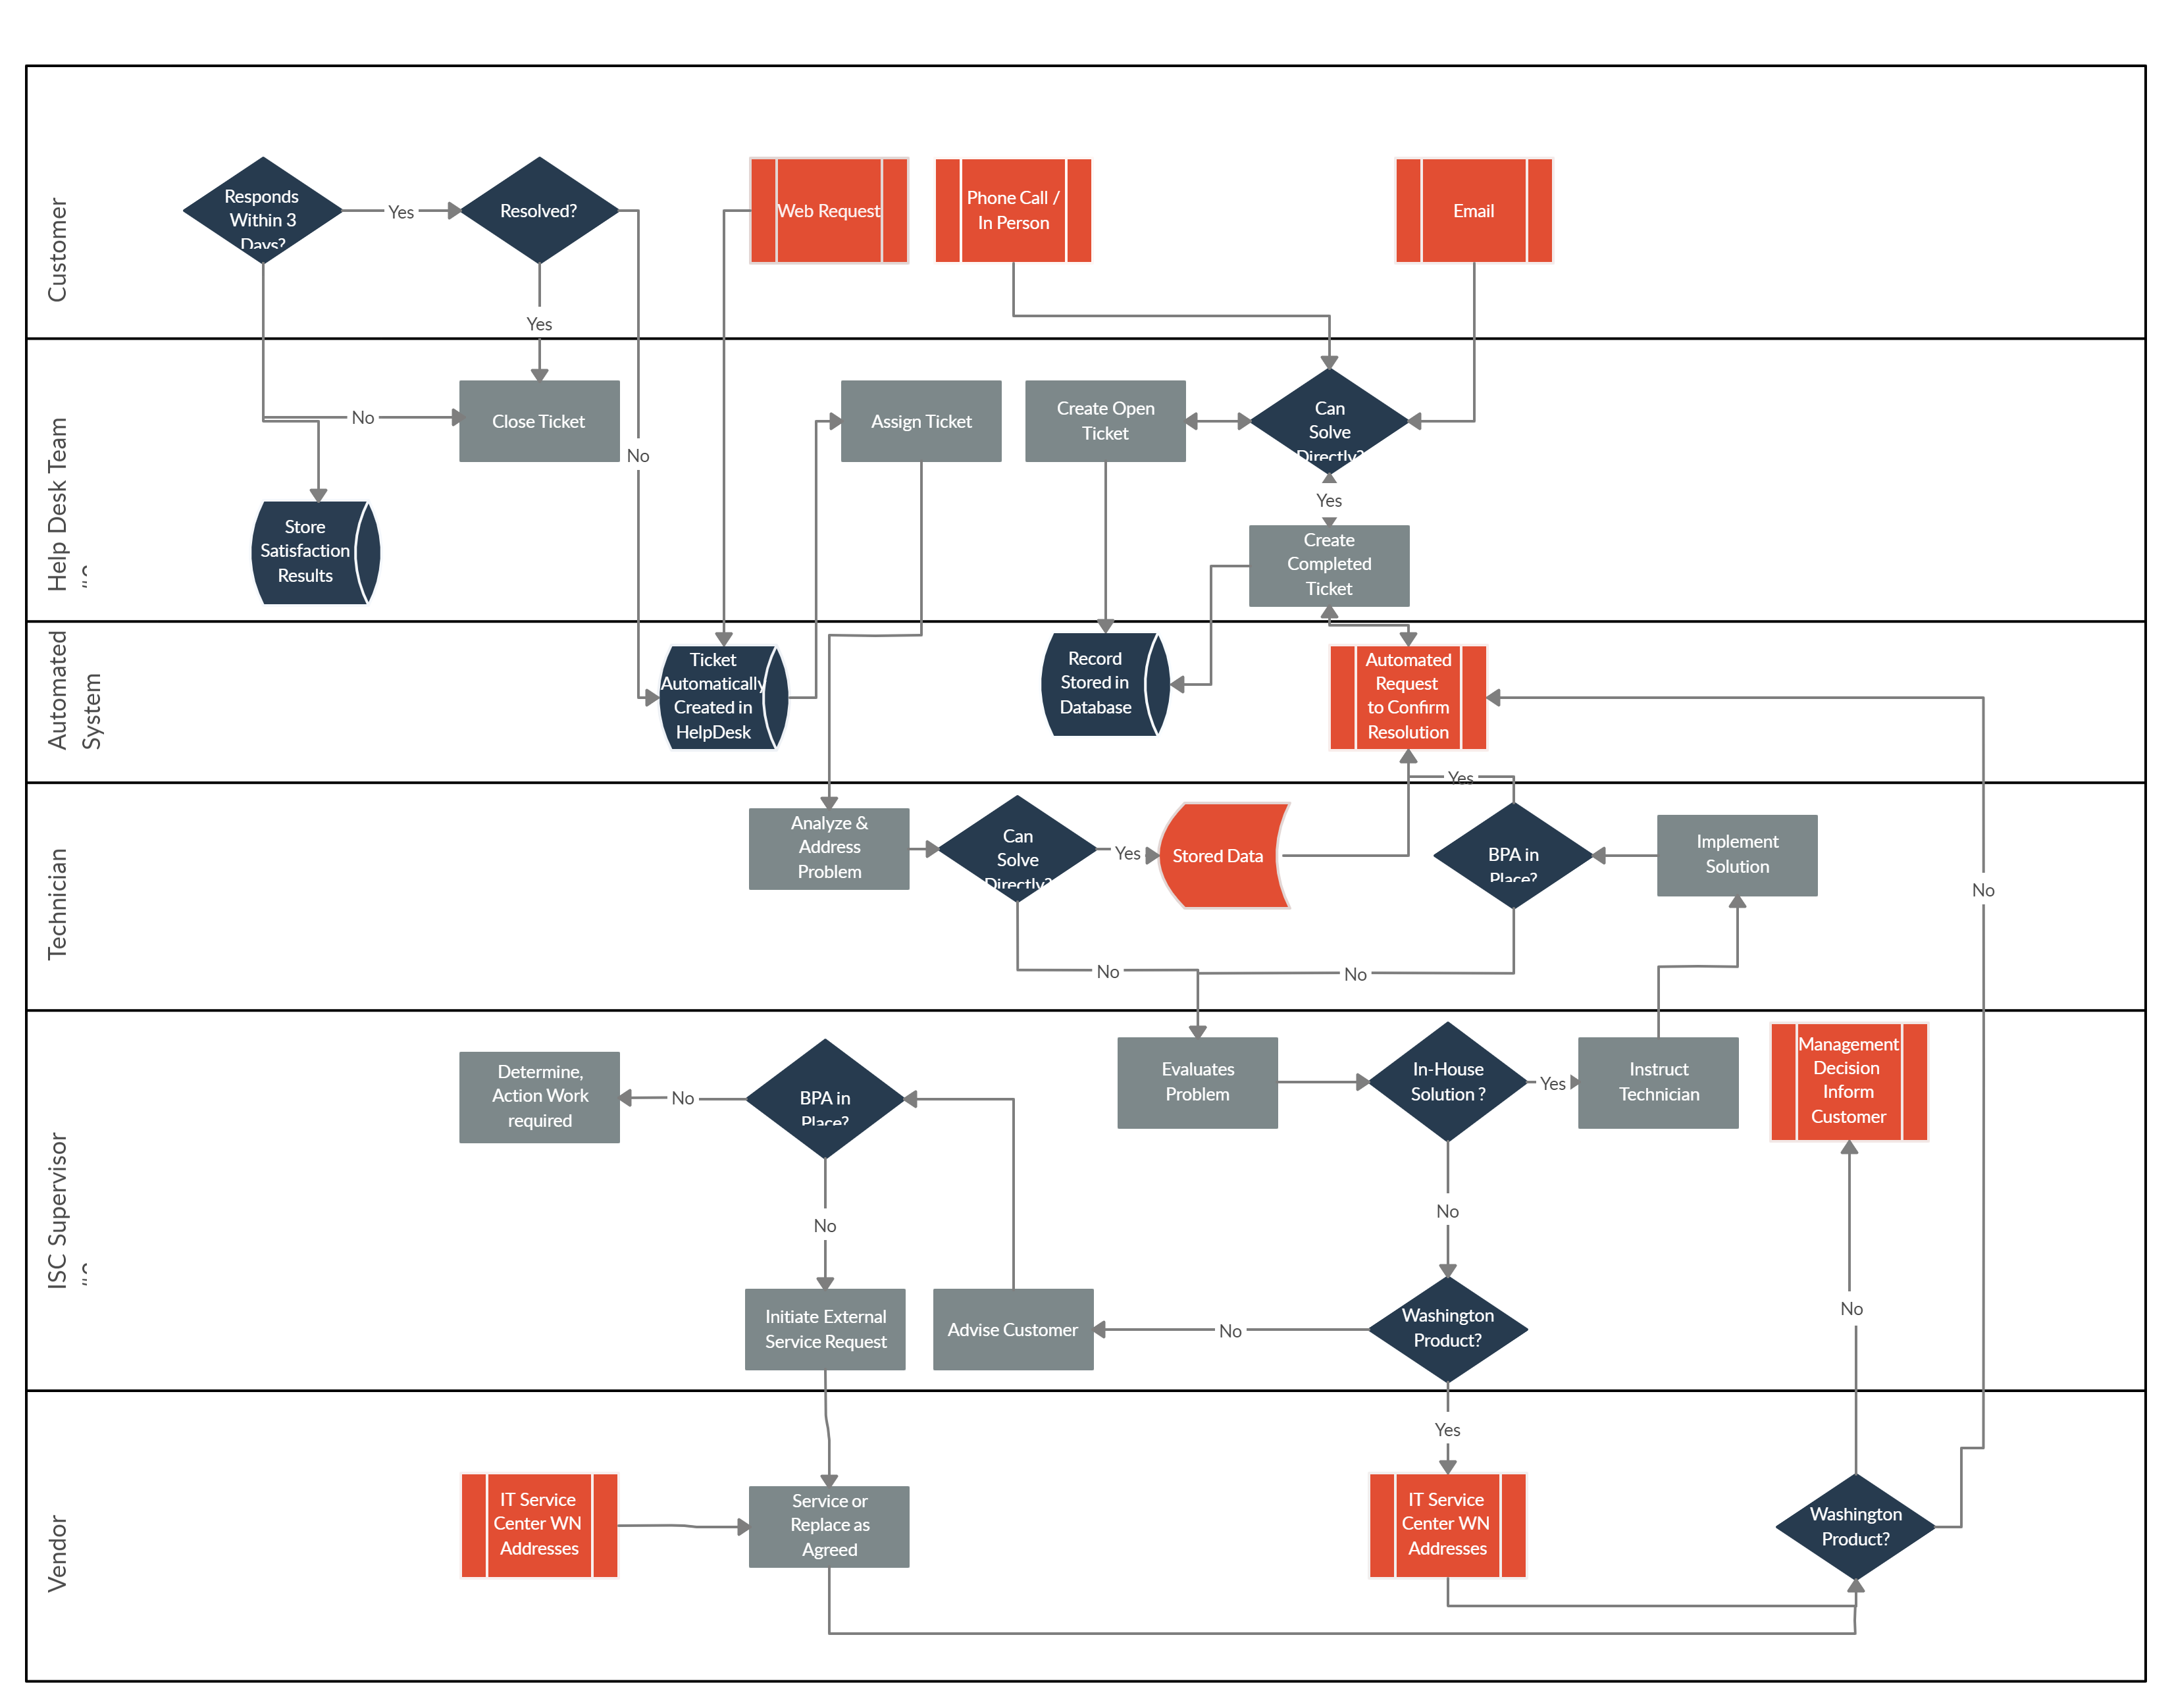 Help Desk Flowchart Template To Visualize The Processes Involved